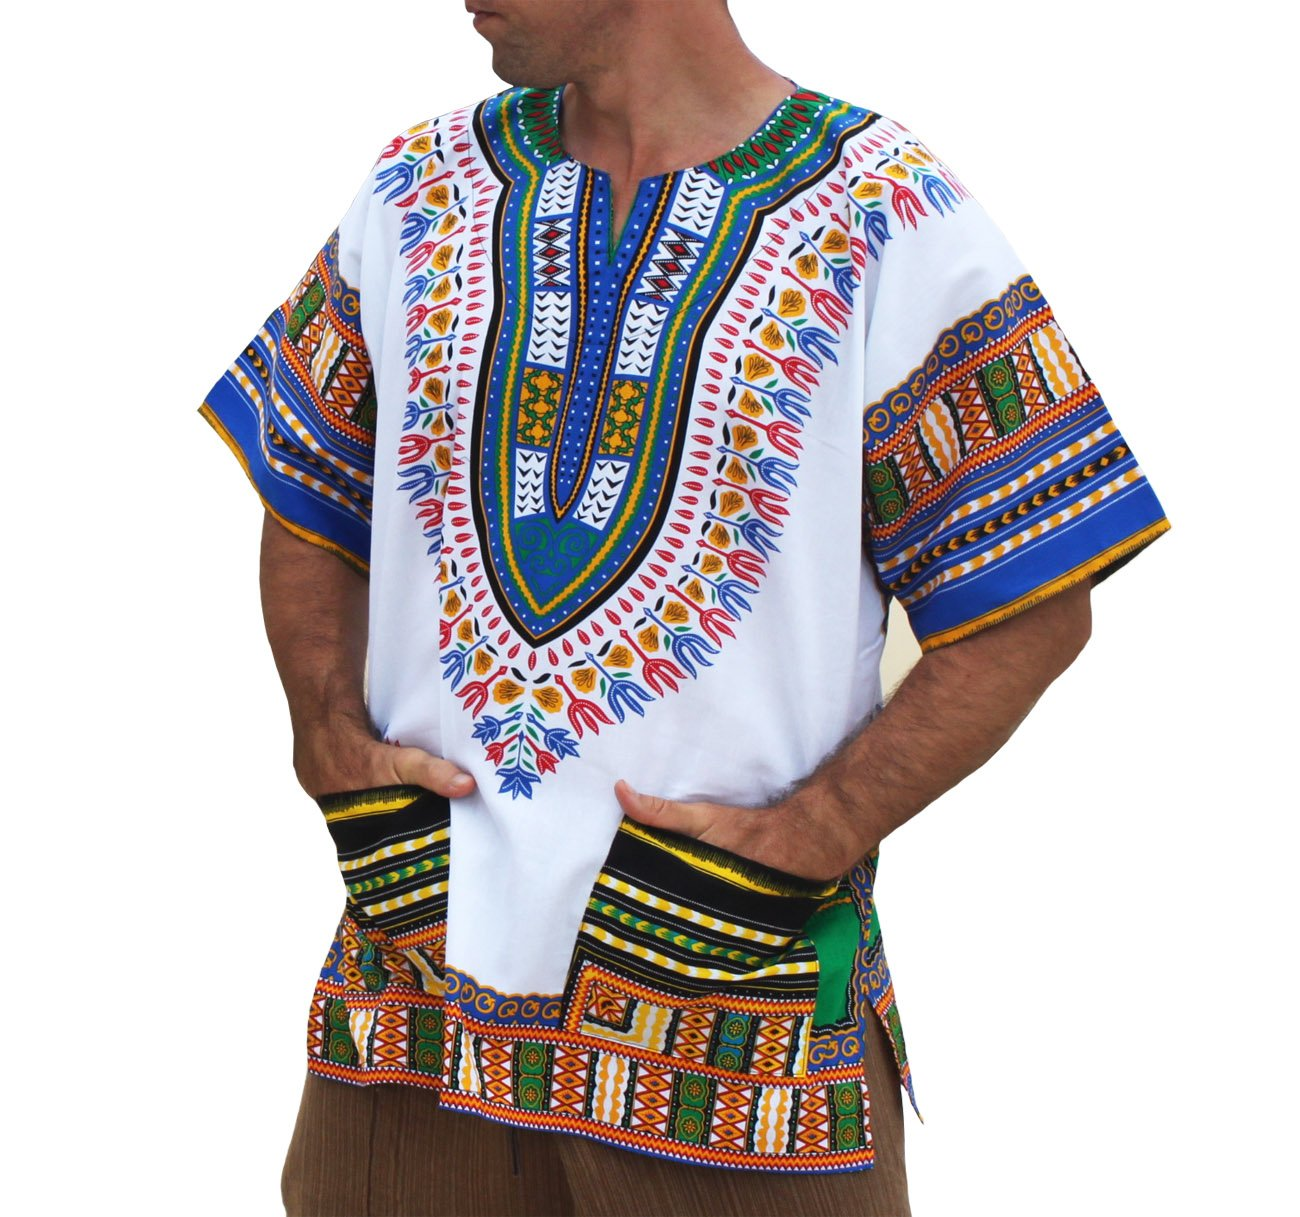 RaanPahMuang Brand Unisex Bright African White Dashiki Cotton Shirt #89 Aqua blue Medium